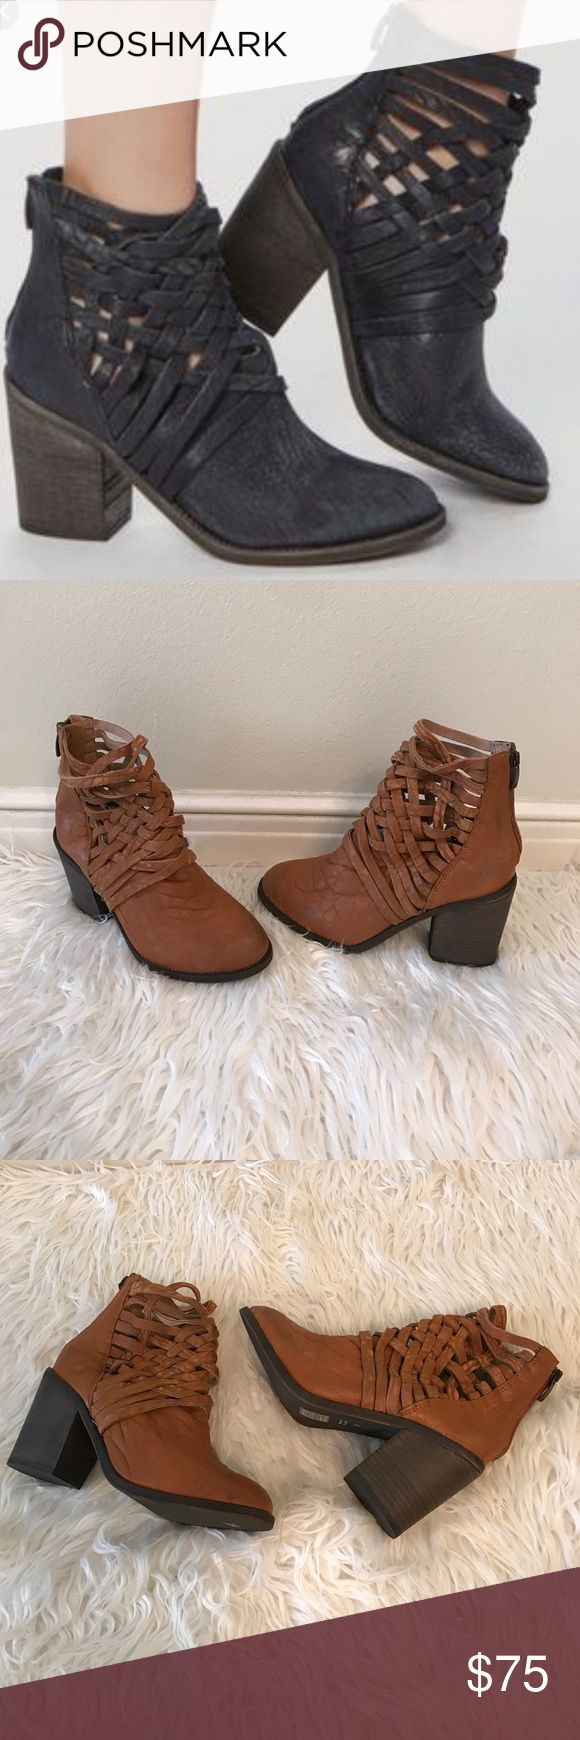 Free People Braided Ankle Booties NWOB. Perfect for festivals! Very comfortable Bootie. ✅Bundle & Save Sorry no trading Fast Shipper Happy Poshing Free People Shoes Ankle Boots & Booties